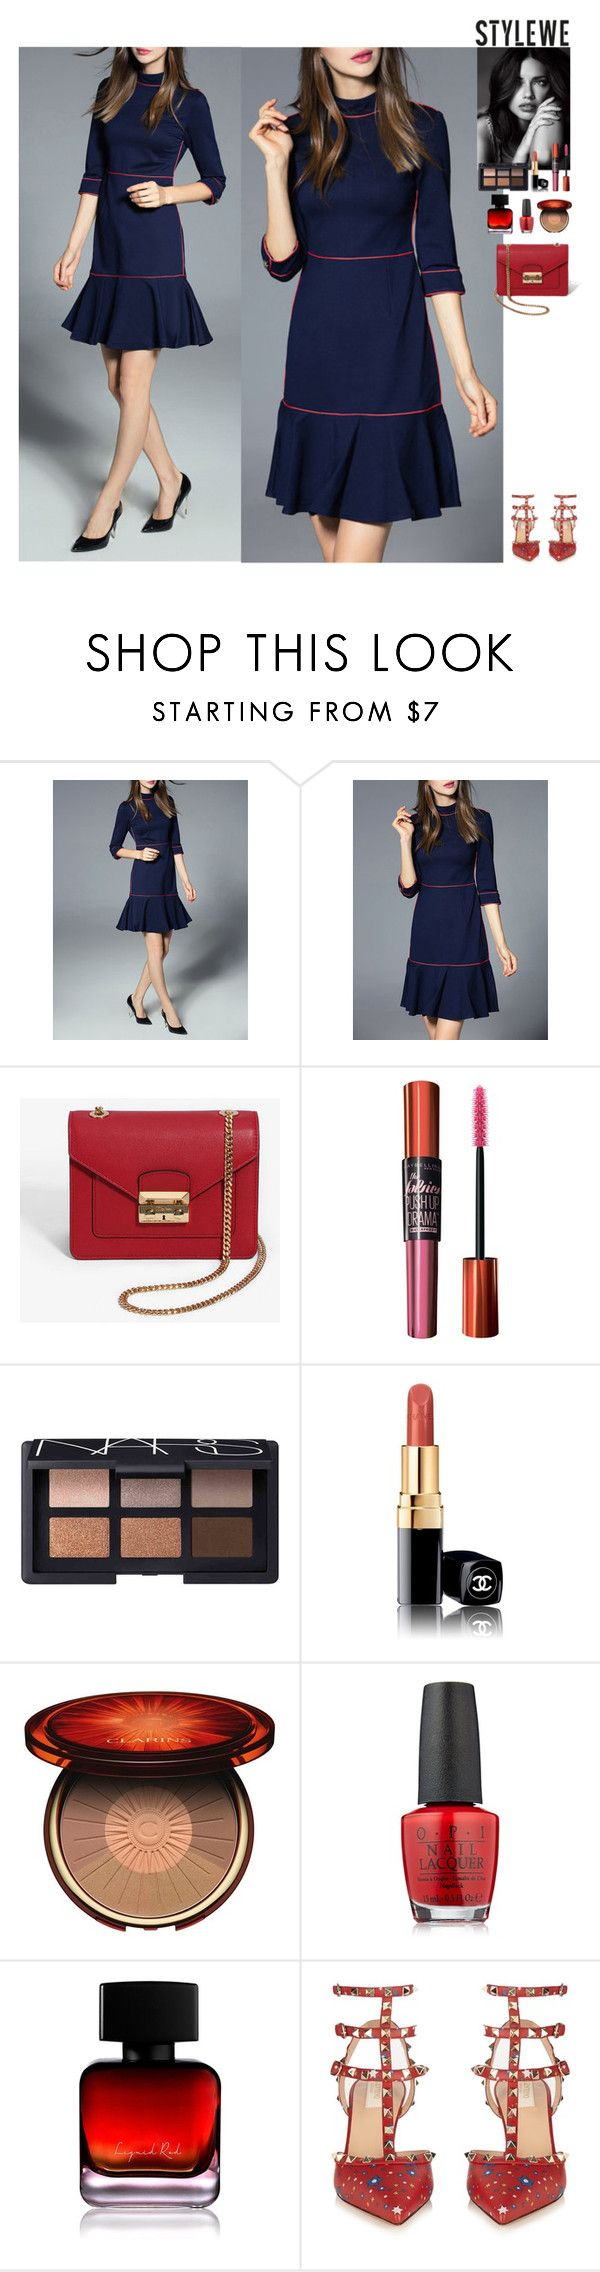 Outfit StyleWe by eliza-redkina on Polyvore featuring мода, Valentino, NARS Cosmetics, Clarins, Maybelline, The Collection by Phuong Dang, OPI, Victoria's Secret, outfit and like